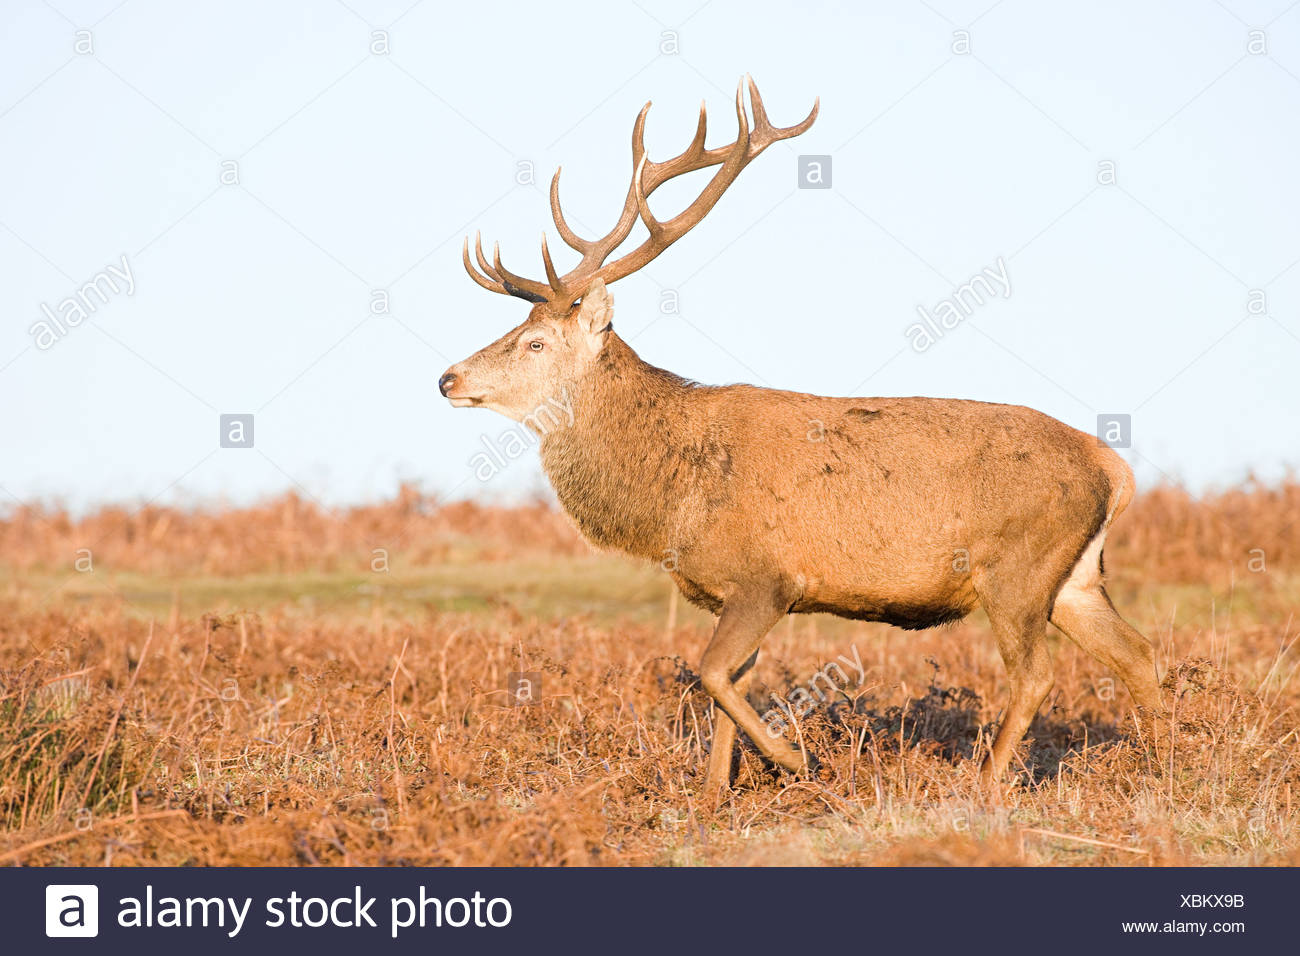 Red deer stag - Stock Image